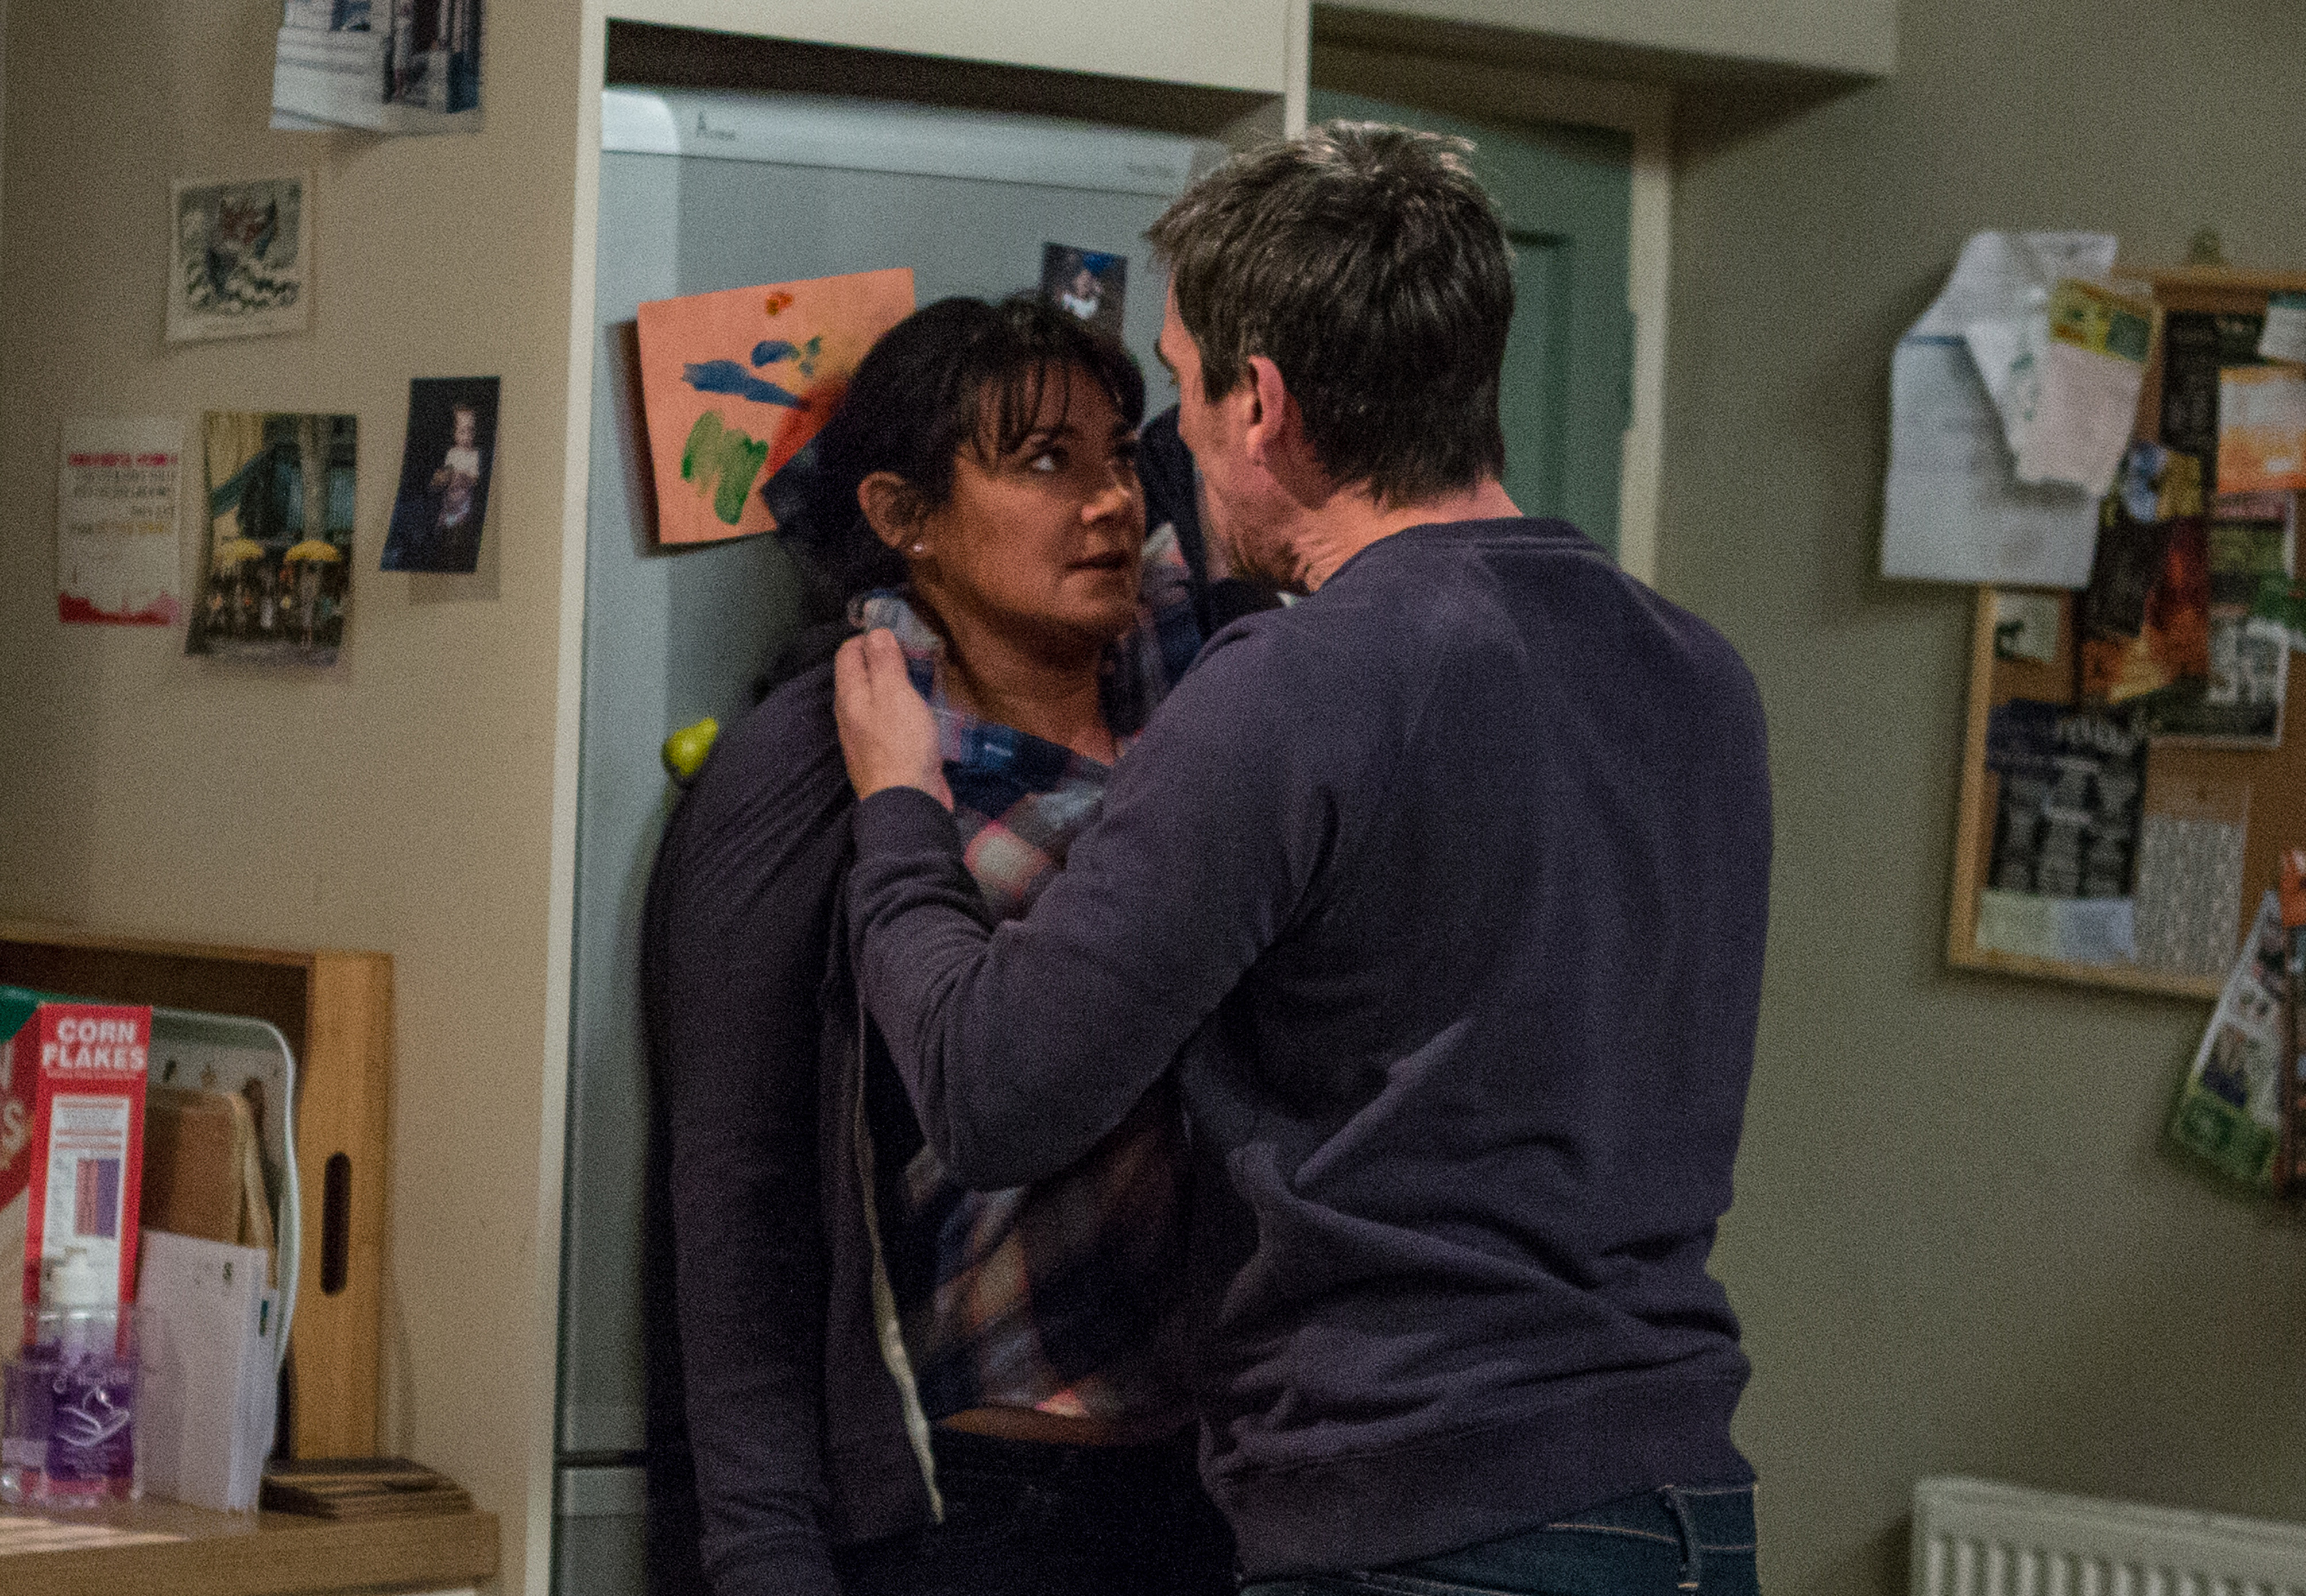 Emmerdale spoilers: Moira Dingle tells Cain she's done after two violent attacks